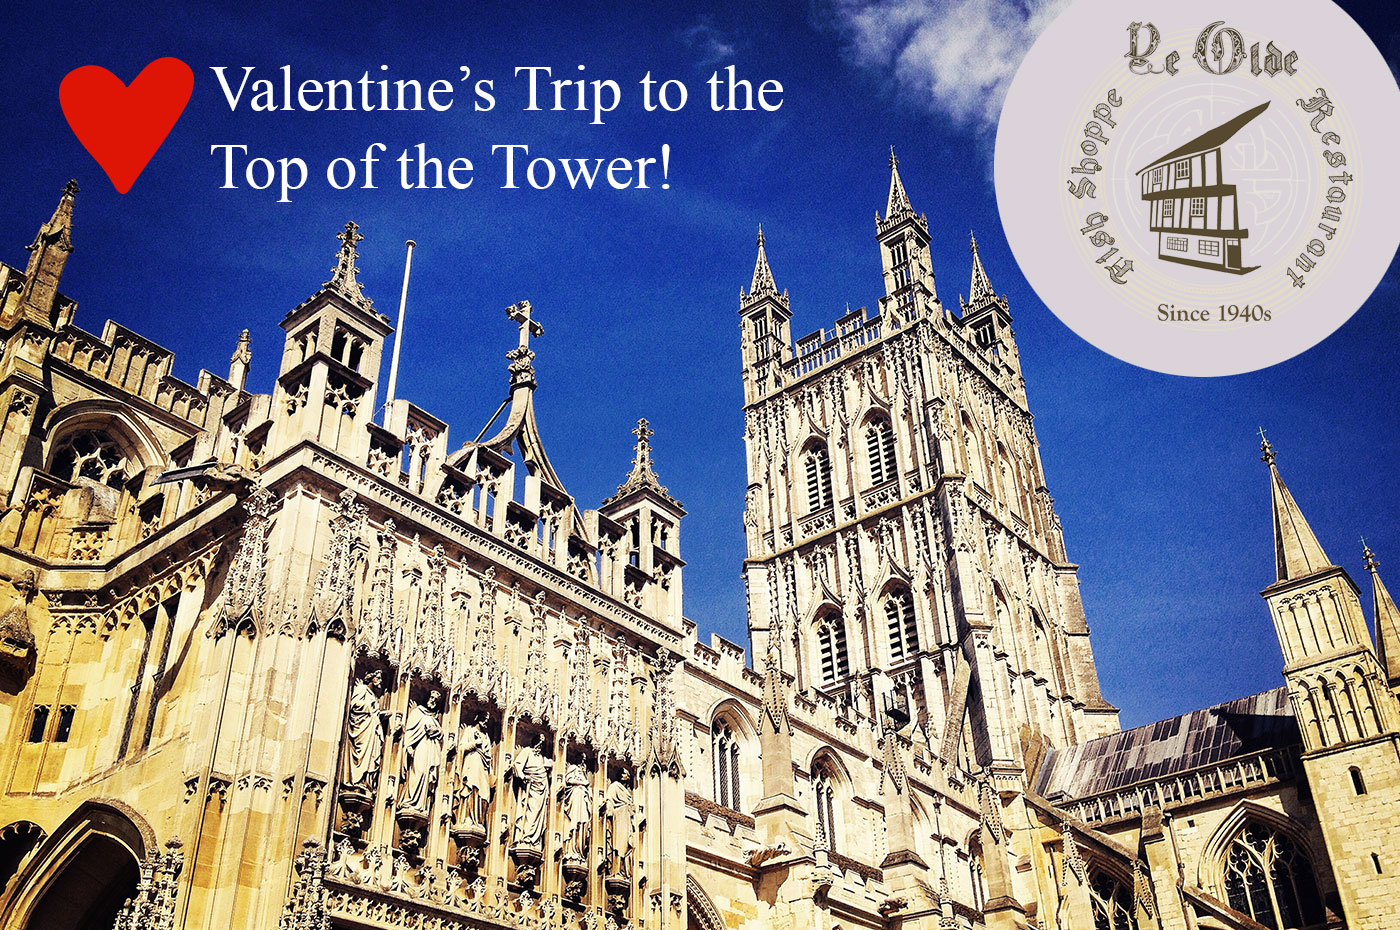 Valentine's Trip to the Top of the Tower!